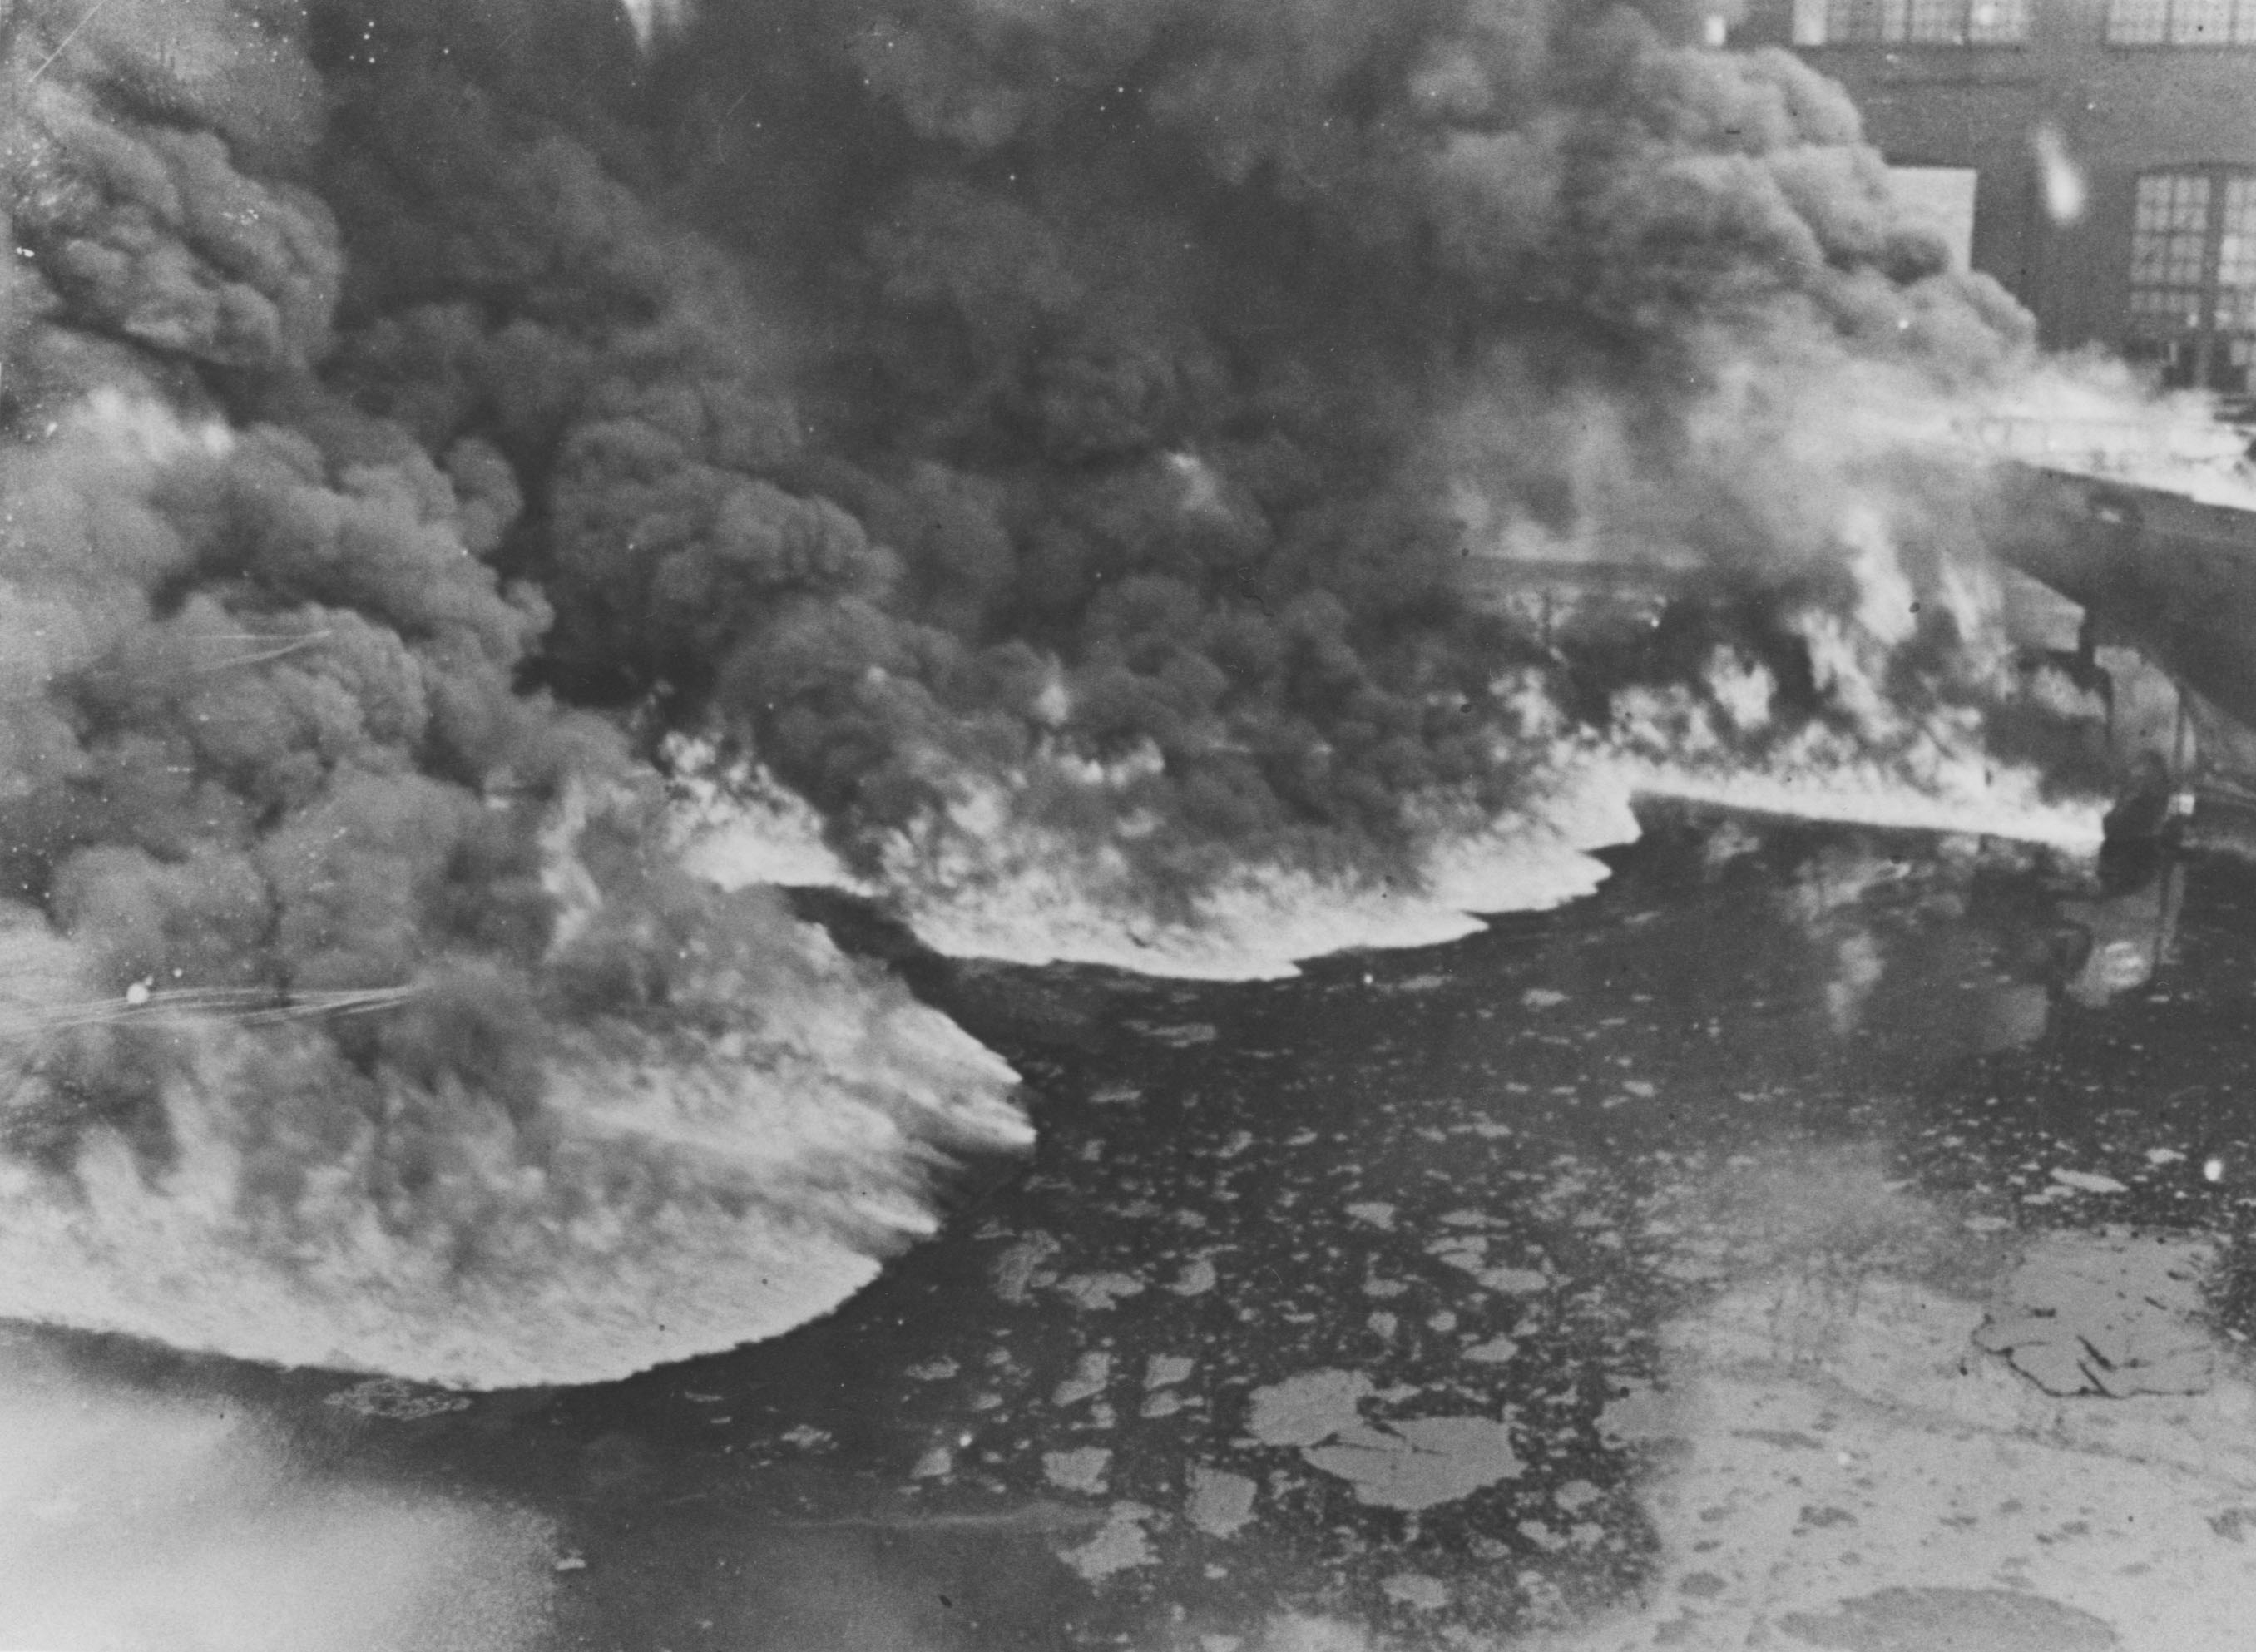 48 Years Ago, Cuyahoga River Catches Fire; Today, Mariners ...